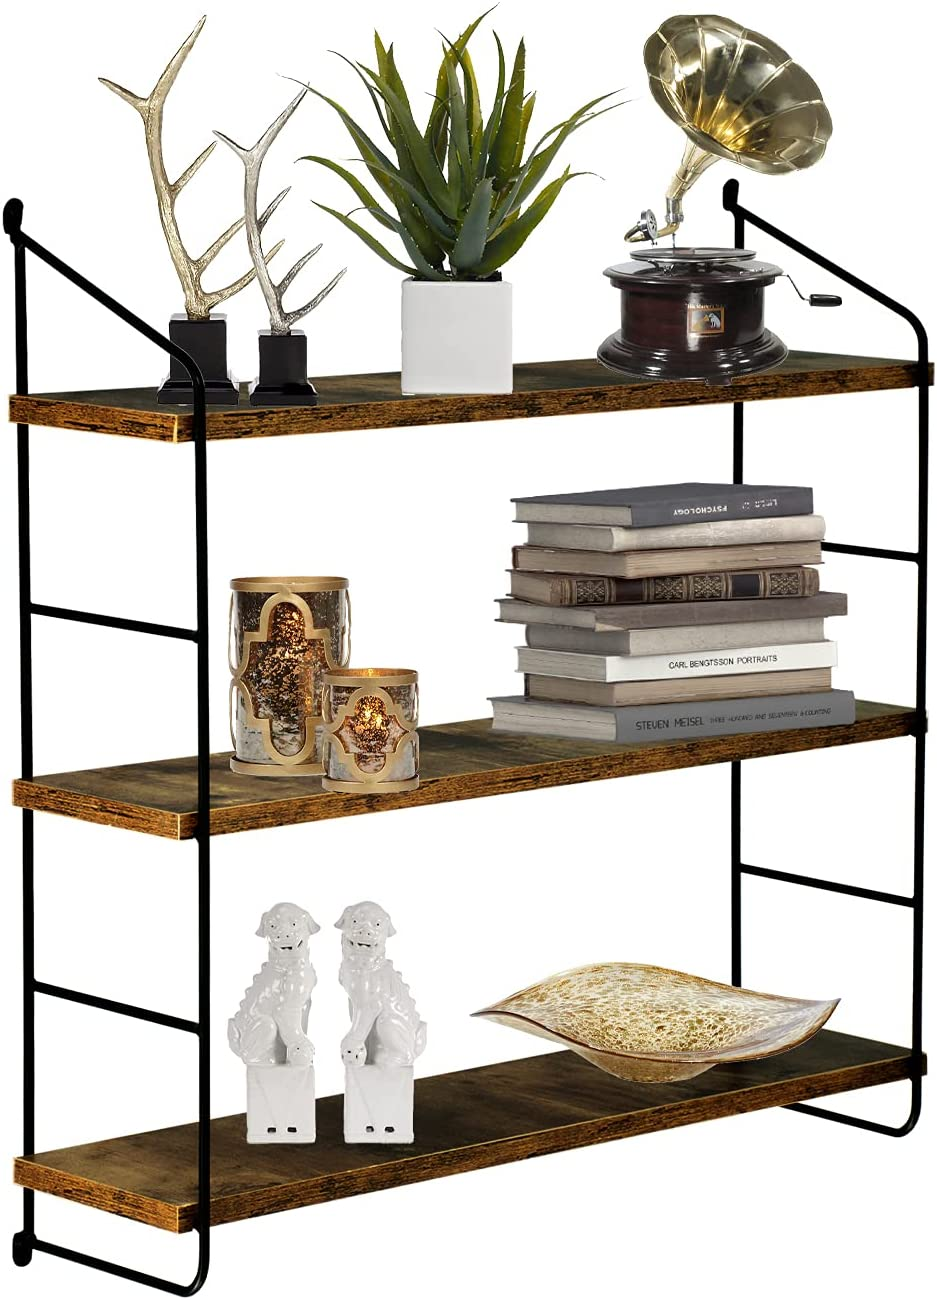 Floating Shelves for Wall,Industrial Shelves,Metal Brackets Wall Mounted Shelves,Rustic Brown Wall Decor Set (3 Tier)